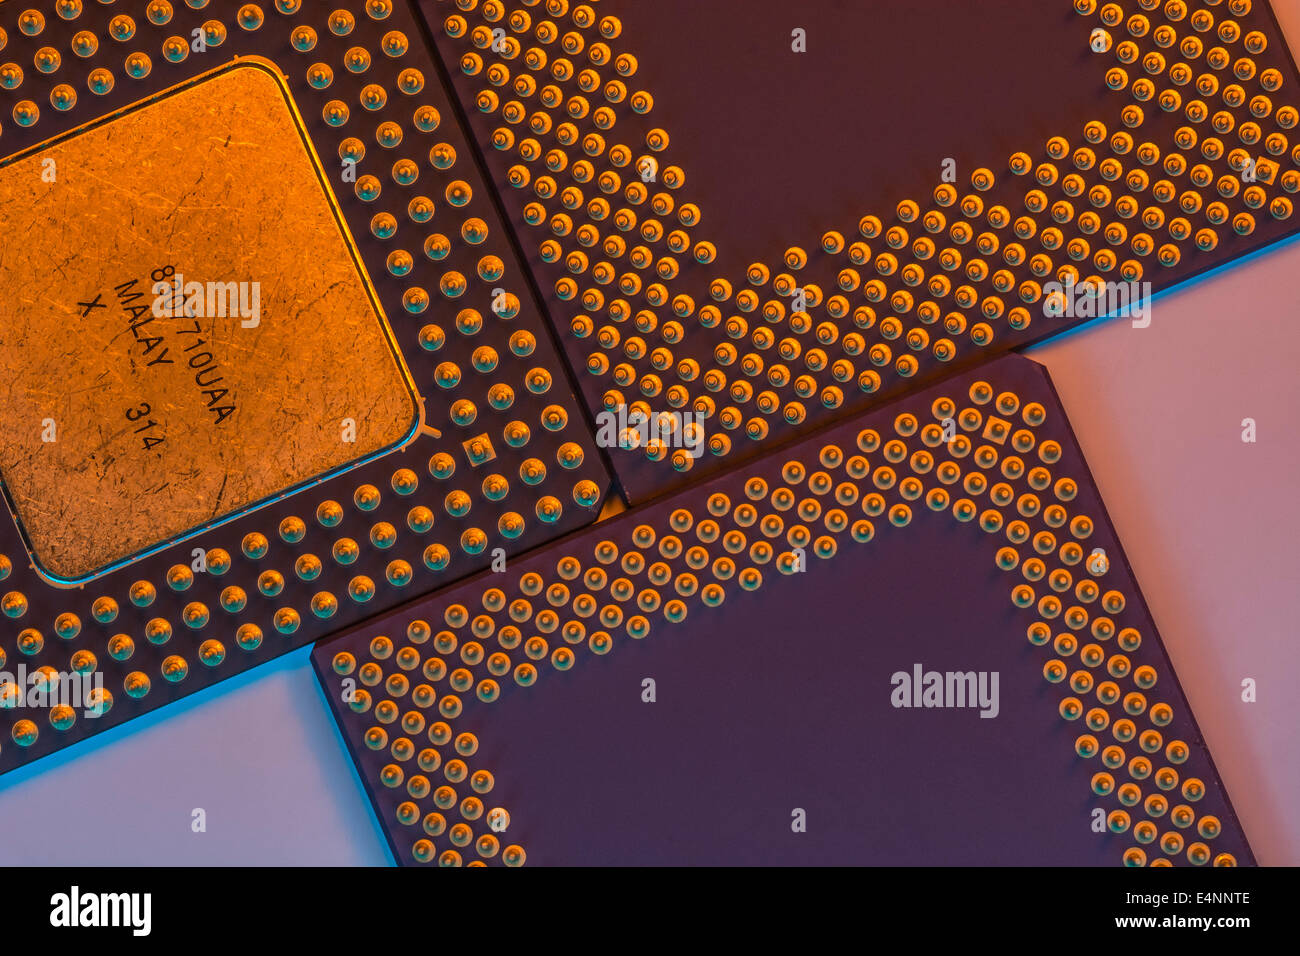 Legacy Intel / AMD PC processors showing gold pinout (staggered PGA) arrangements of the different designs. - Stock Image